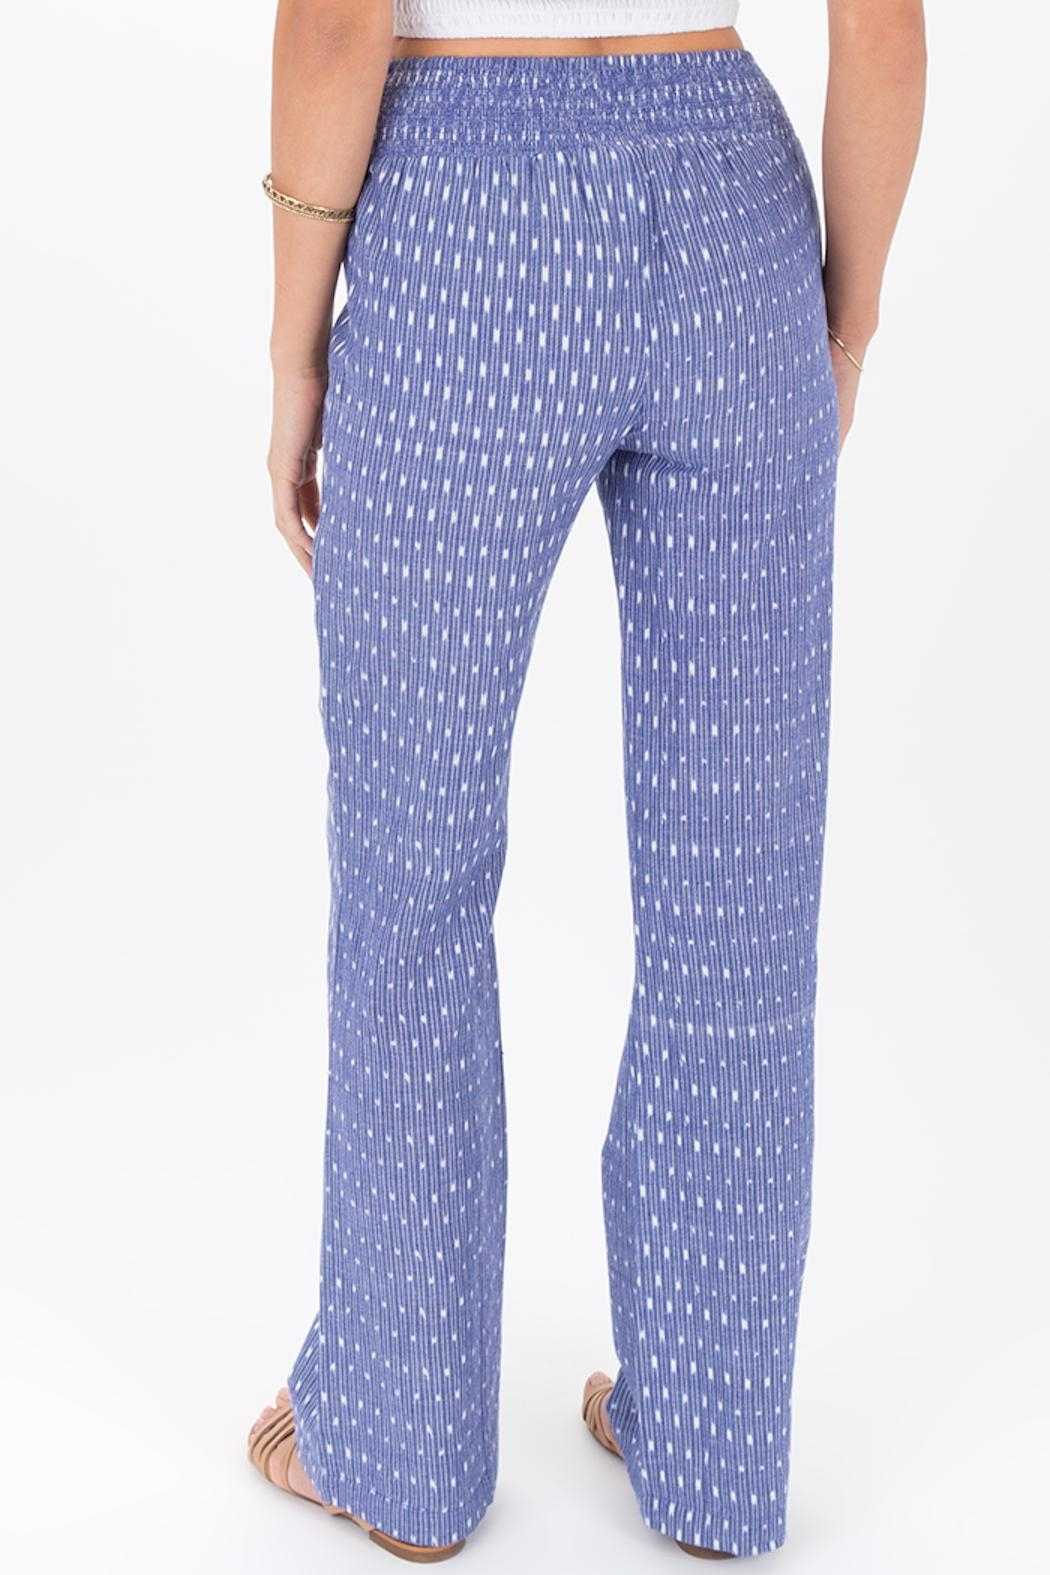 Others Follow  Lyric Beach Pant - Front Full Image